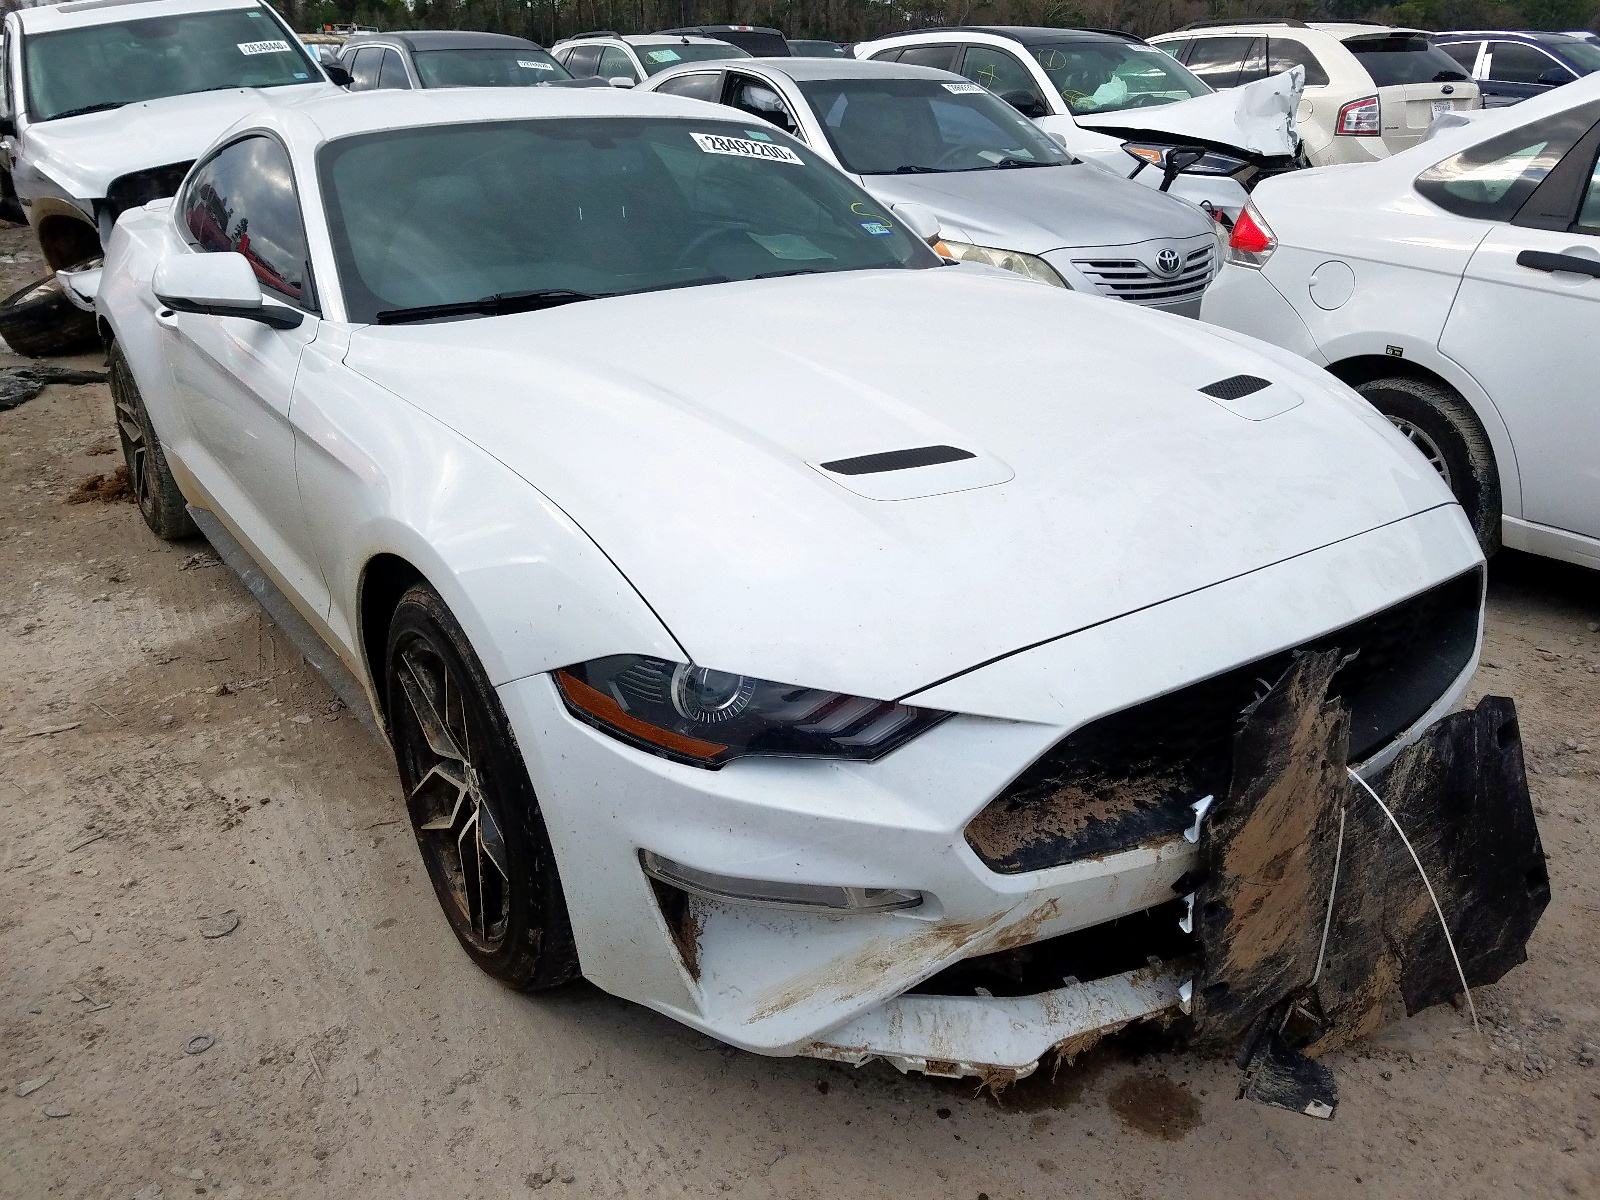 1FA6P8TH4J5115720 - 2018 Ford Mustang 2.3L Left View